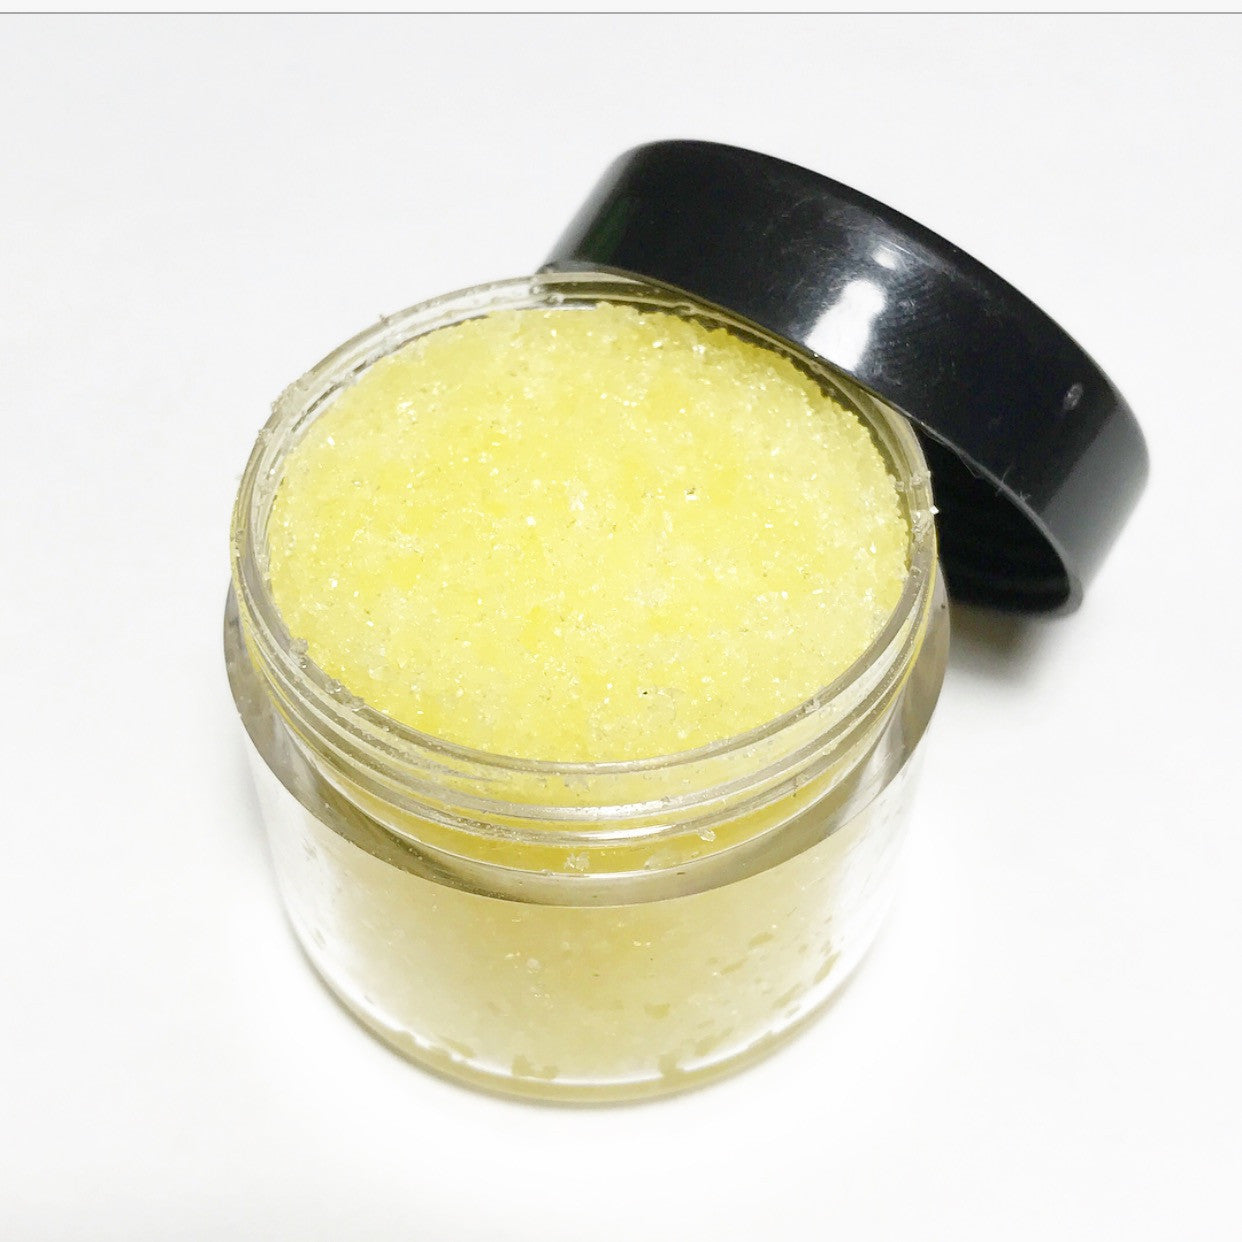 Lemon Pound Cake Edible Lip Scrub